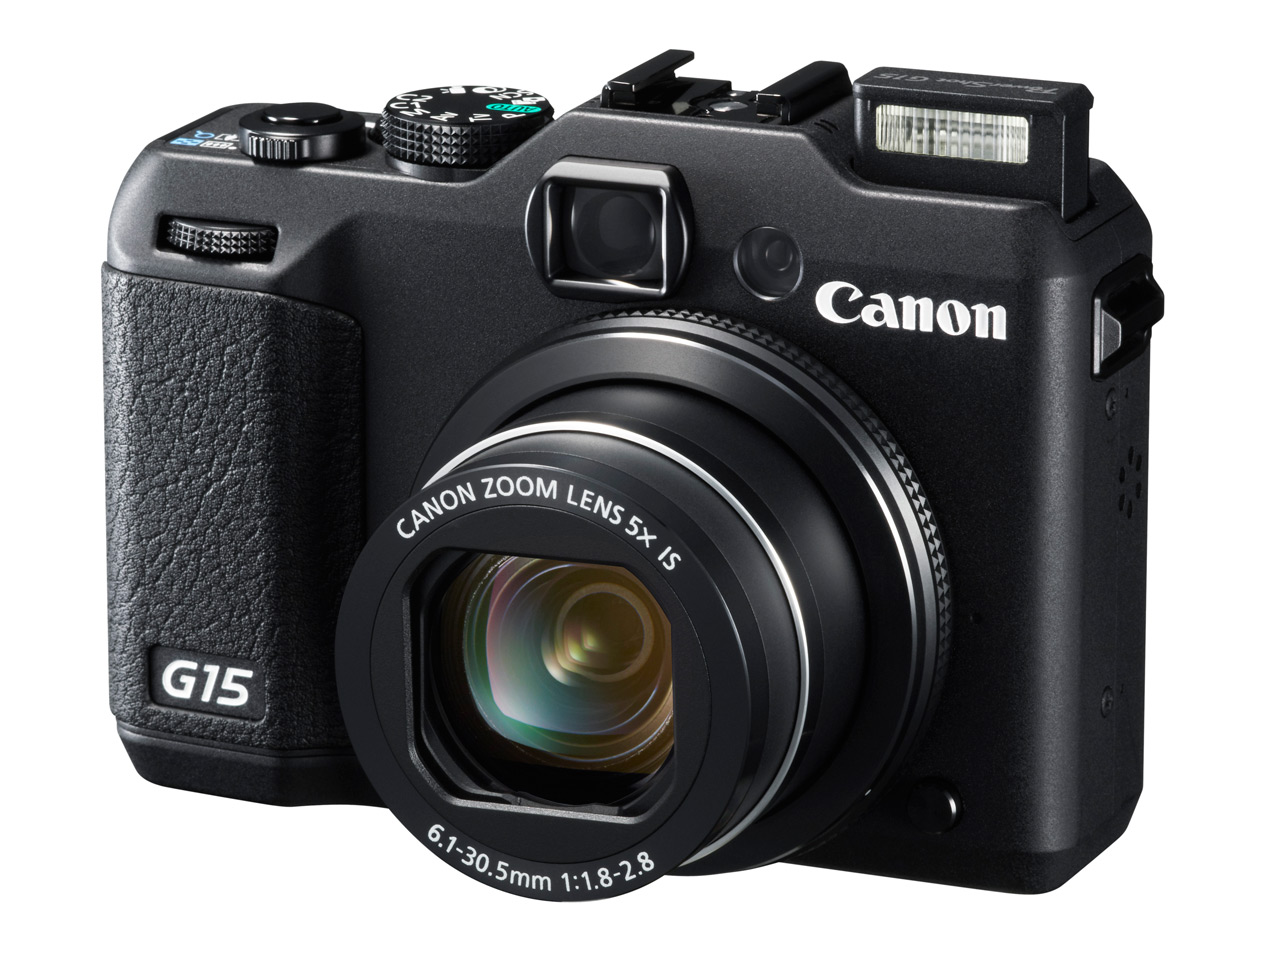 Dpreview Recommends: Top 5 Compact Cameras: Digital Photography Review